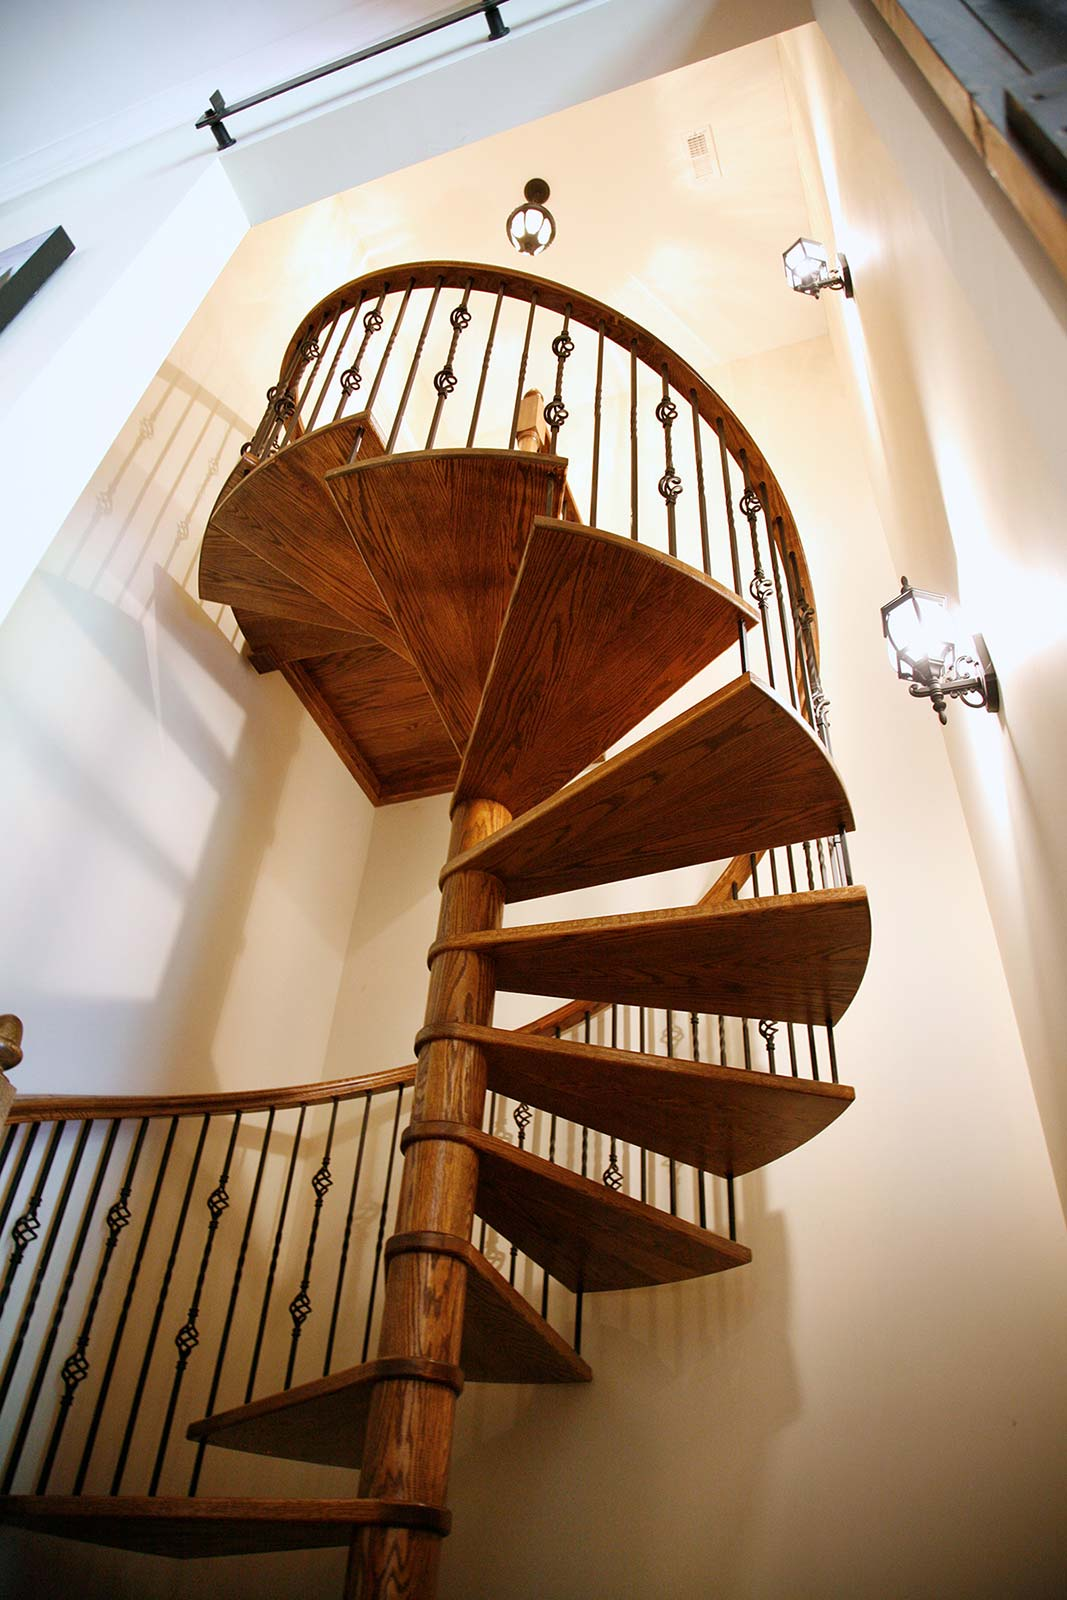 View from below wooden spiral stairway